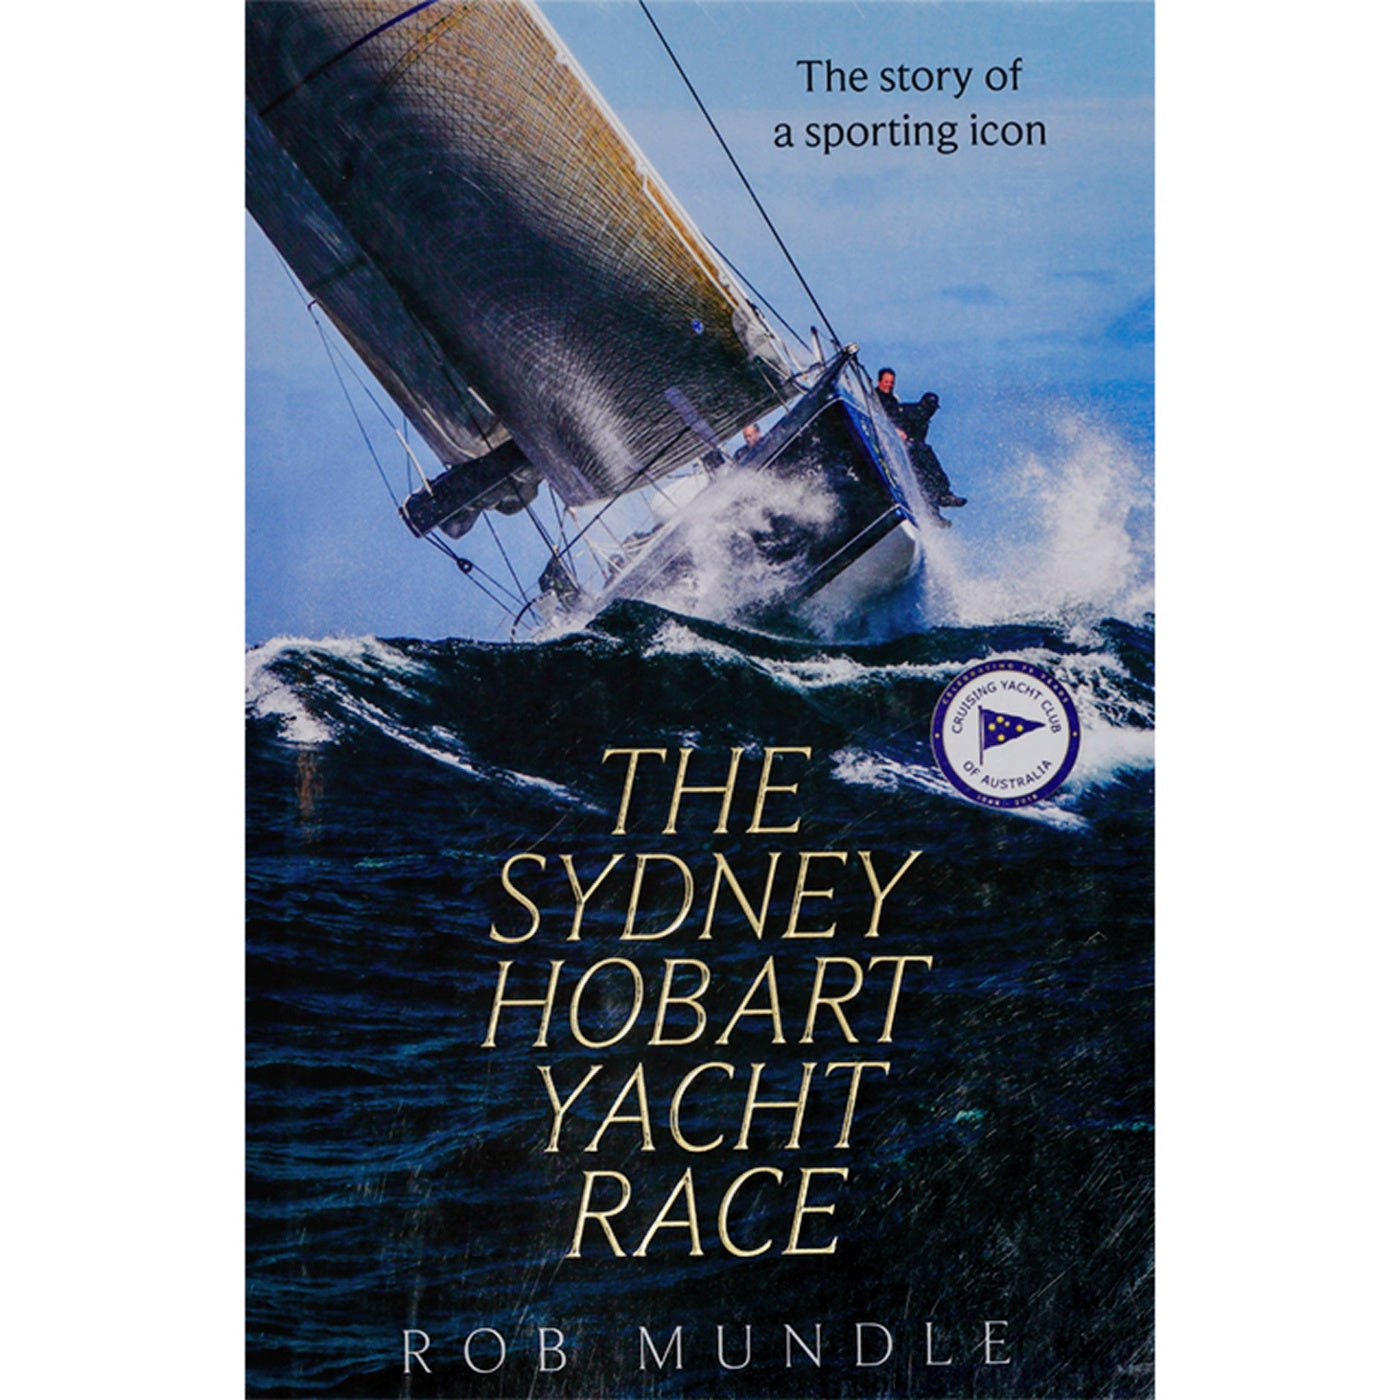 The Sydney to Hobart Yacht Race